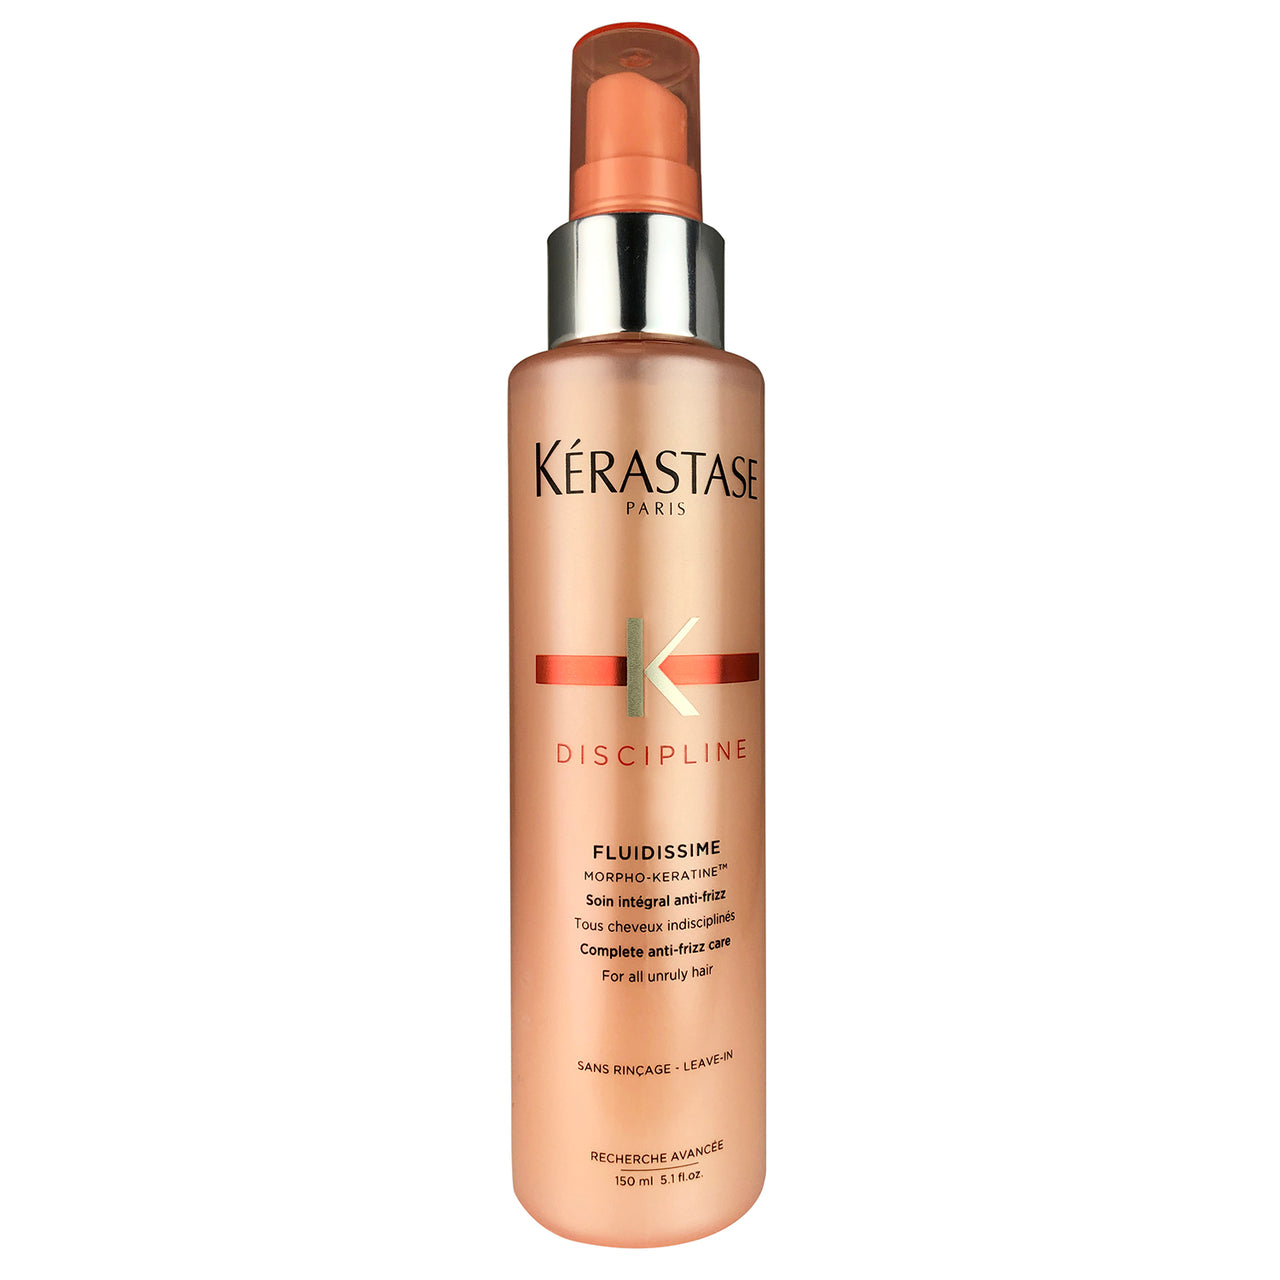 Kerastase Discipline Complete Anti-Frizz Leave-in Spray Care For All Unruly Hair 5.1 oz